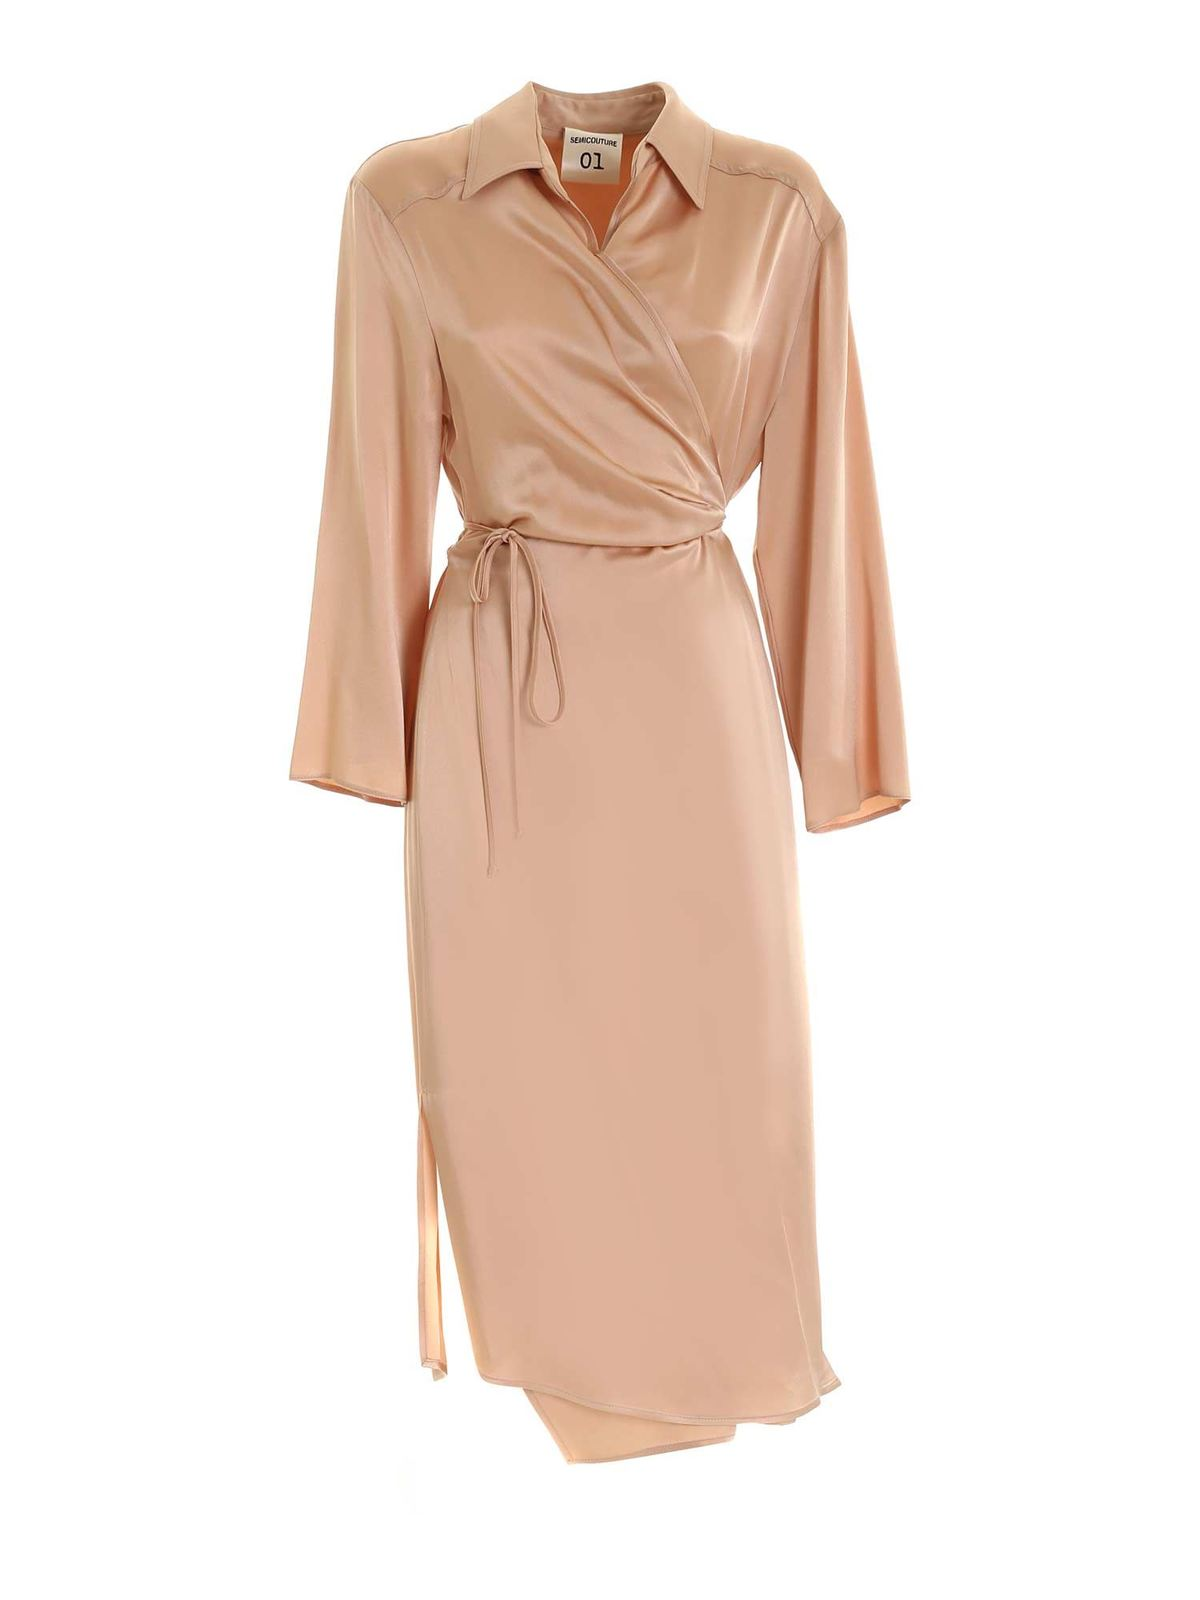 Semicouture ANDREANNE DRESS IN PINK